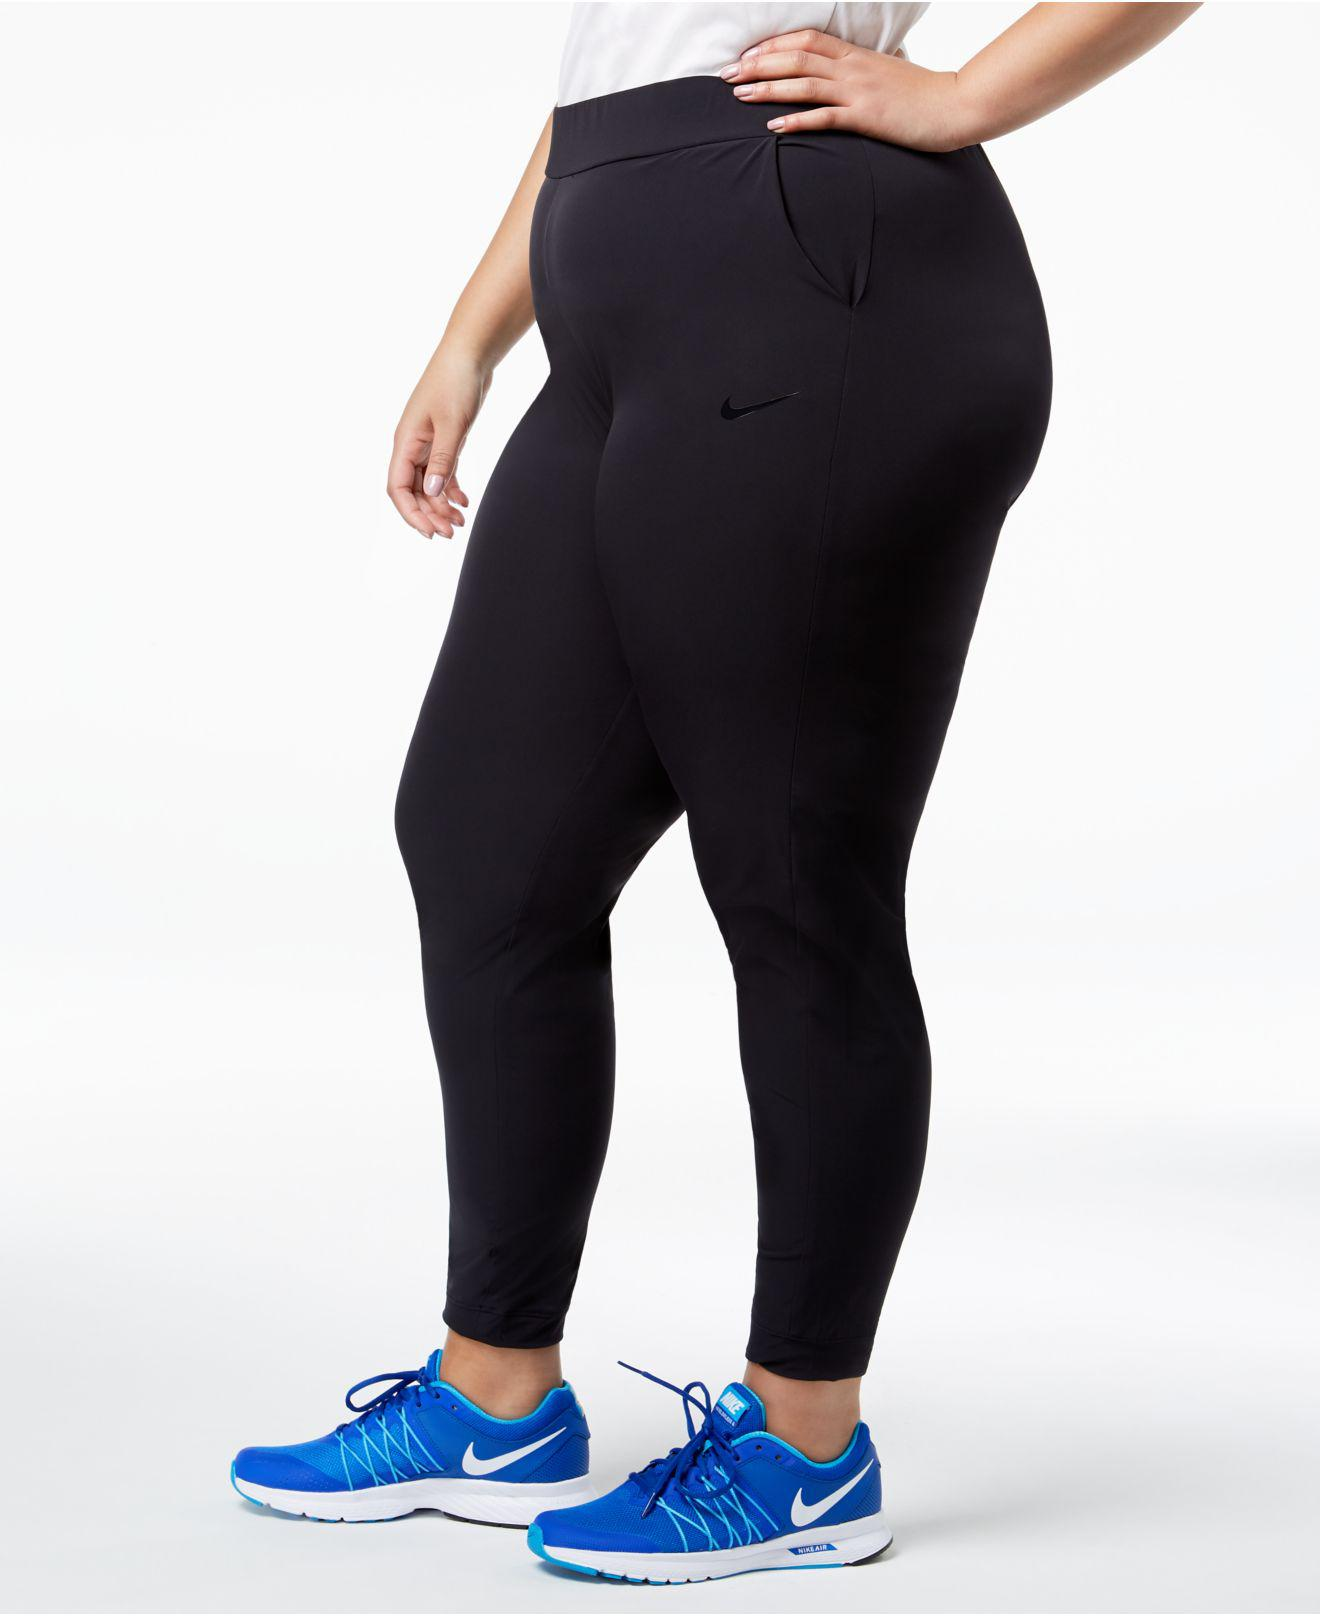 5d37aaa9e6e Lyst - Nike Plus Size Flex Bliss Pants in Black